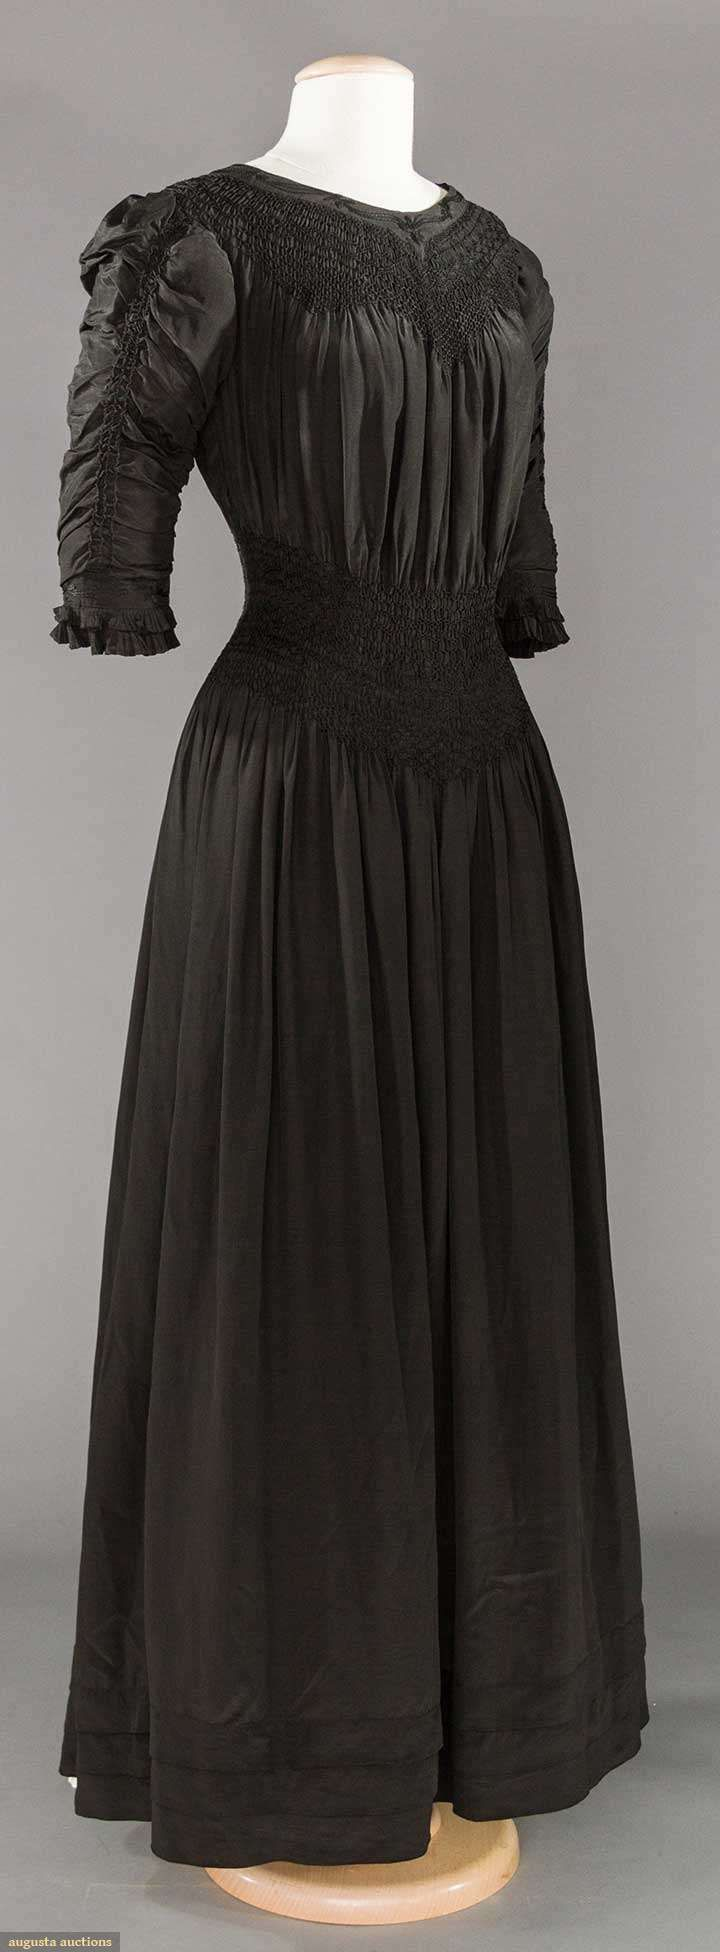 BLACK SILK LIBERTY & CO. AESTHETIC DRESS, 1890-1905  Unlabeled, black China silk, smocked yoke & deep midriff band, embroidered bands at neckline & on sleeve edge, 3 tucks to skirt hem, 14 pair self covered buttons to back